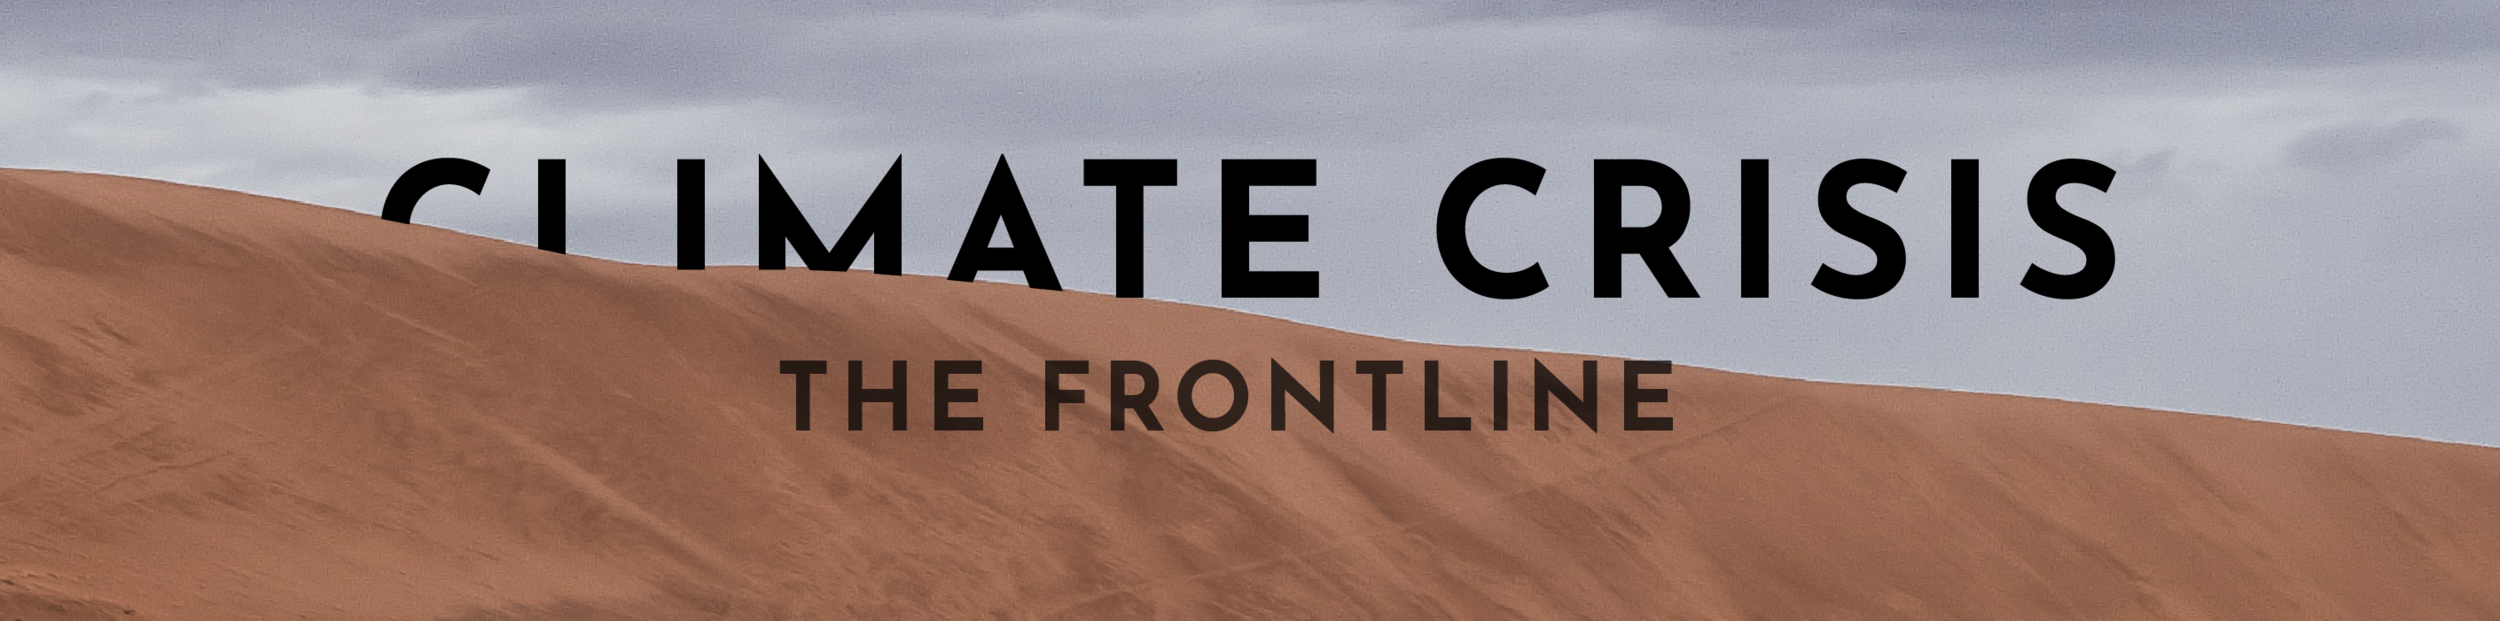 Climate Crisis Film Festival London The Frontline header